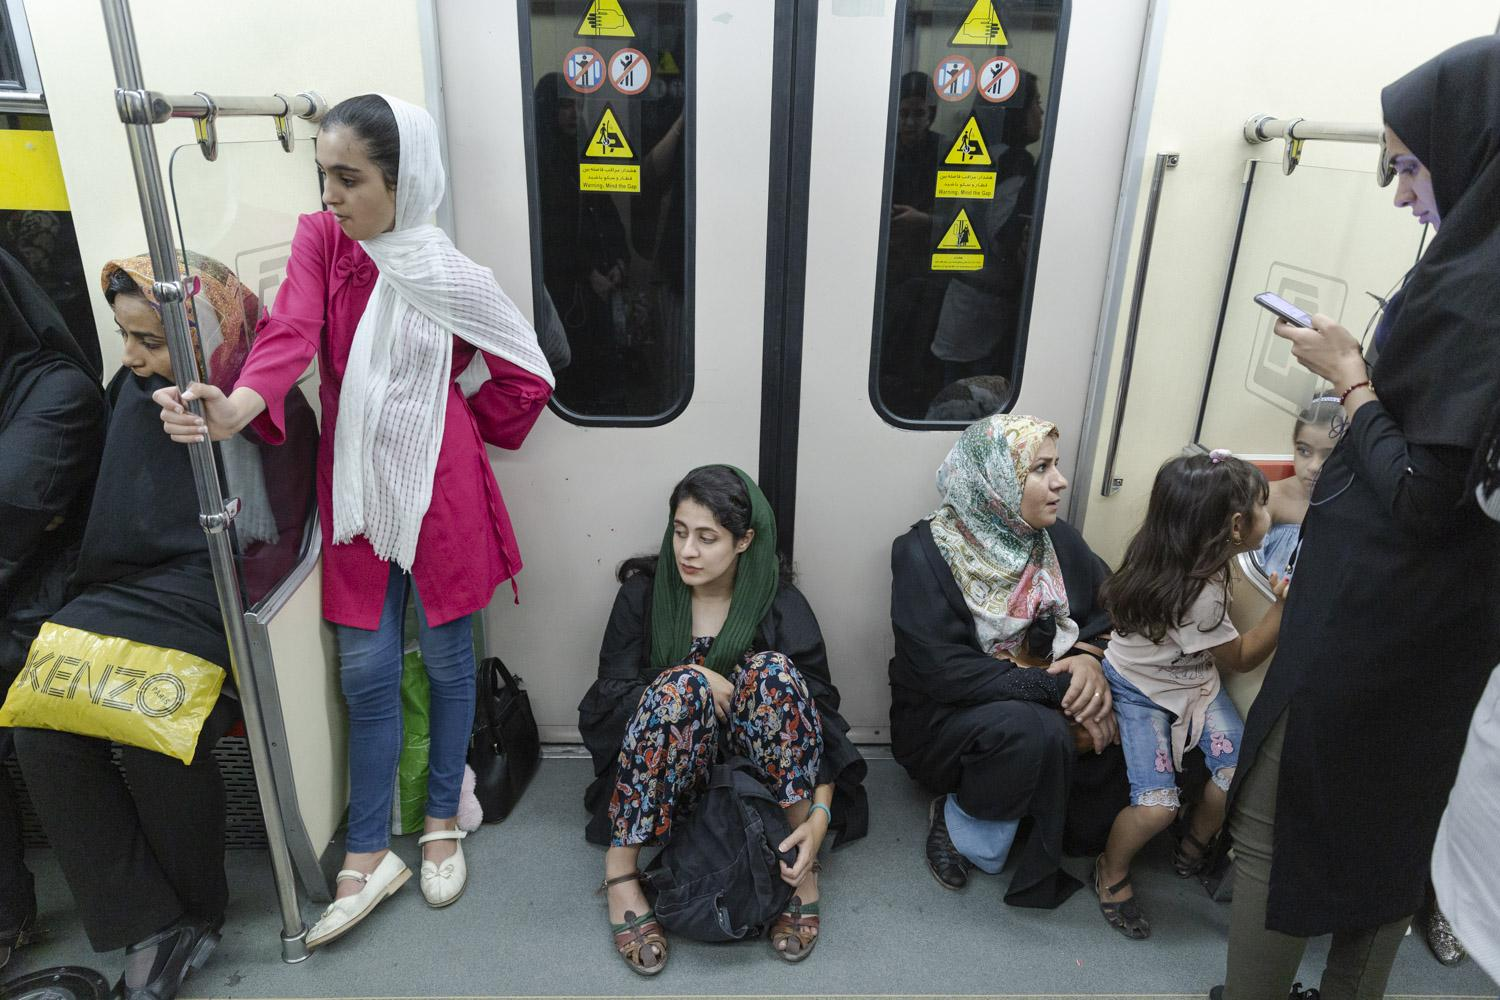 Reyhaneh (22) sits on the floor of the metro in Tehran after a long working day. An hour earlier she was asked by three different people to dress according to the Islamic guidelines within 50 meters.